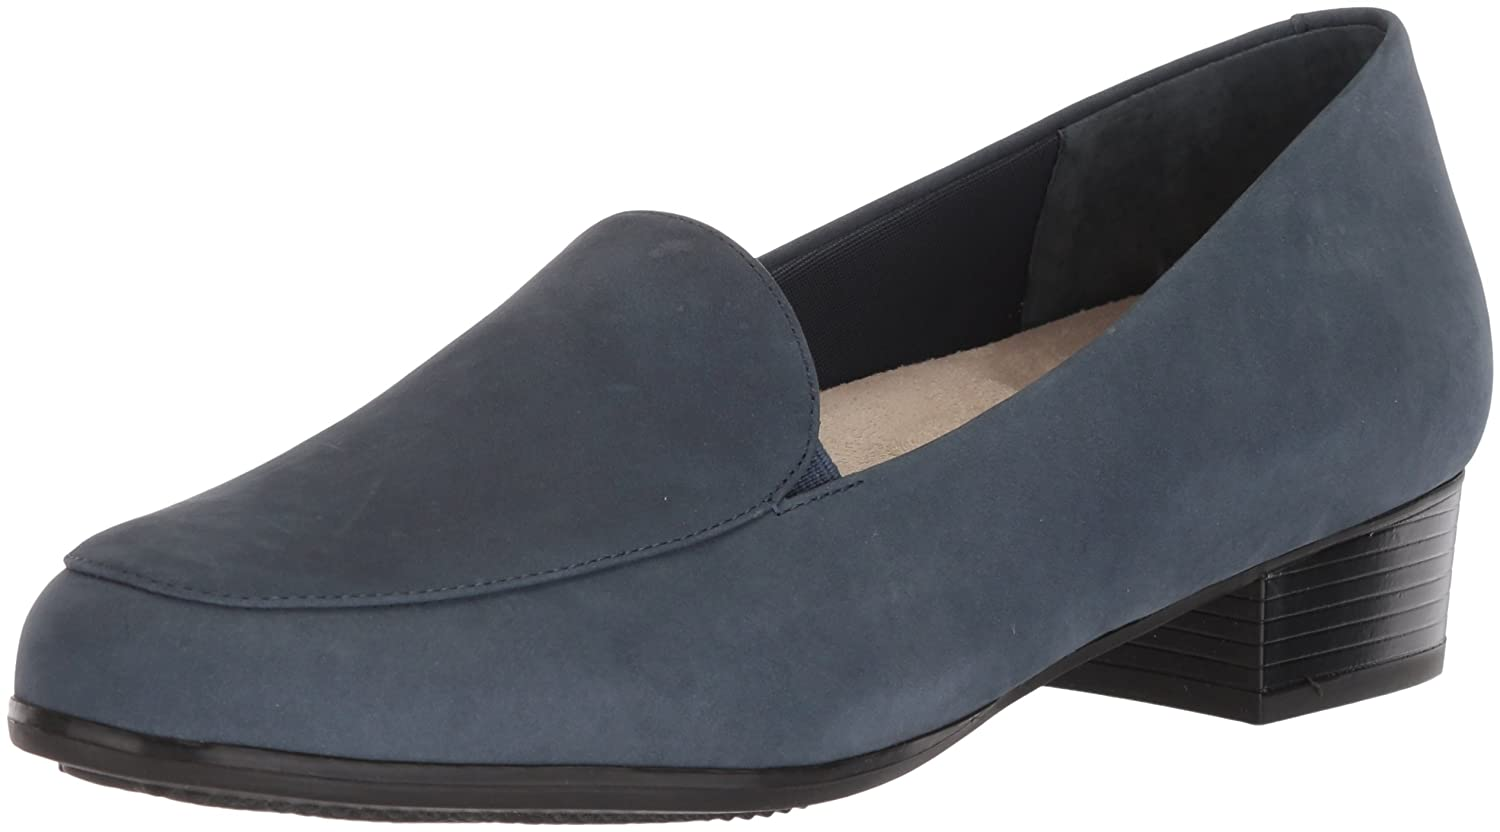 Trotters Frauen Loafers Loafers Loafers  7279d9